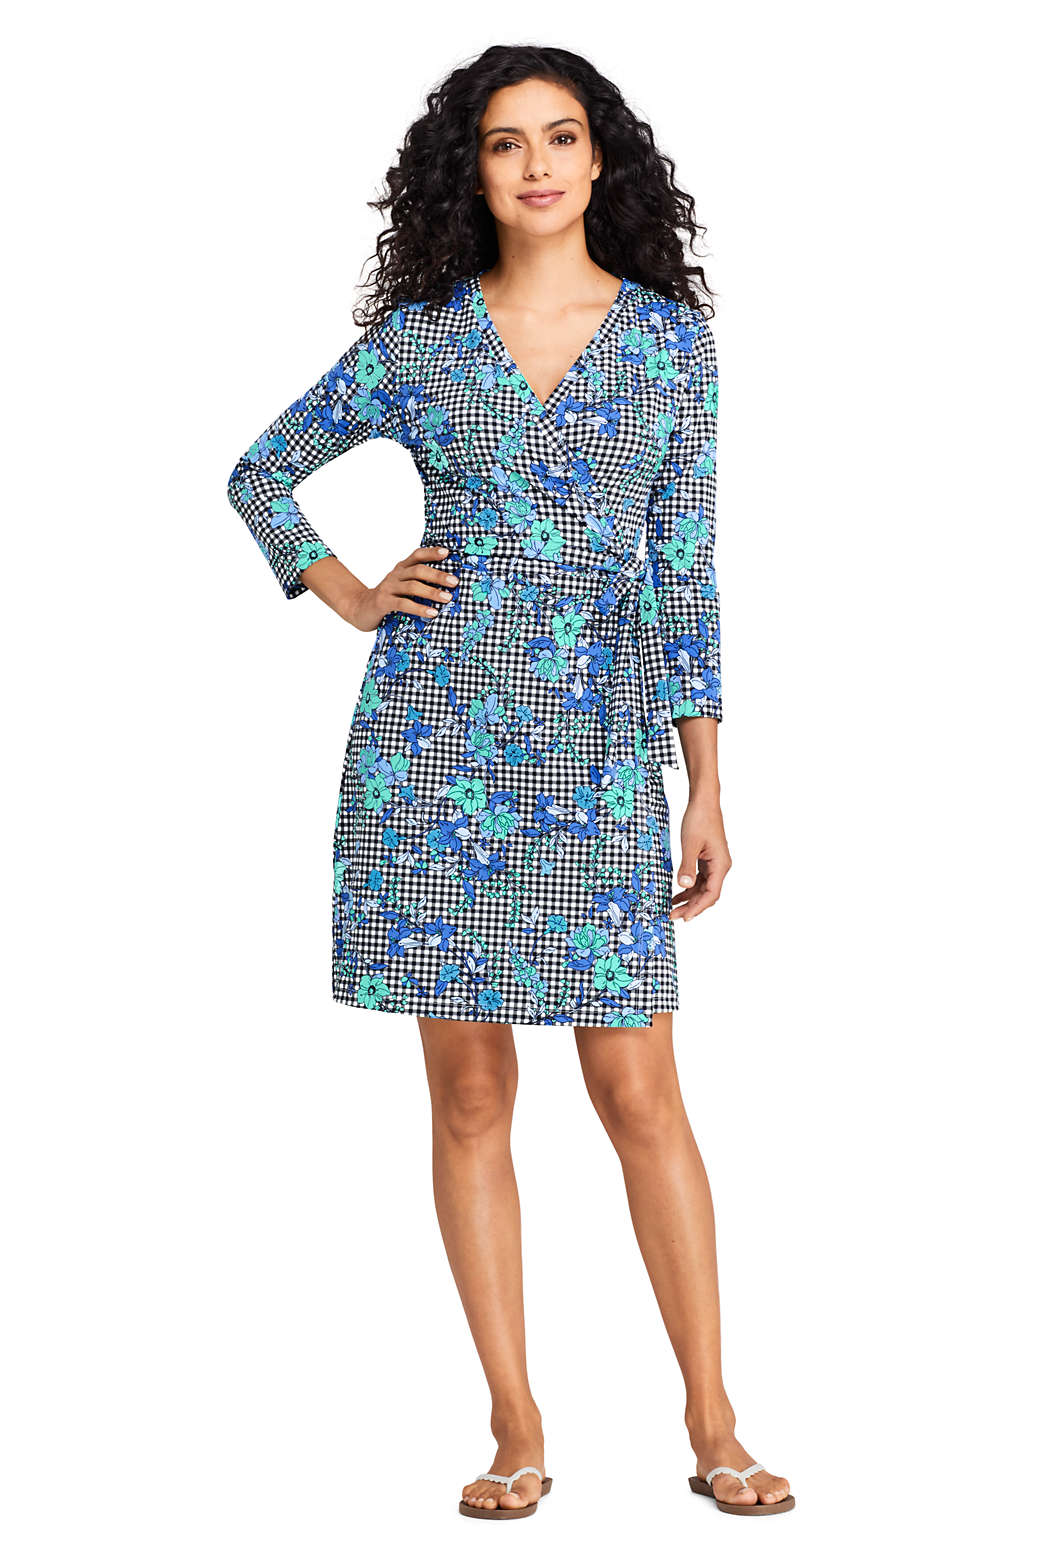 bd4bf73bfb7 Women s Swim Cover-up Wrap Dress with UV Protection Print from Lands  End